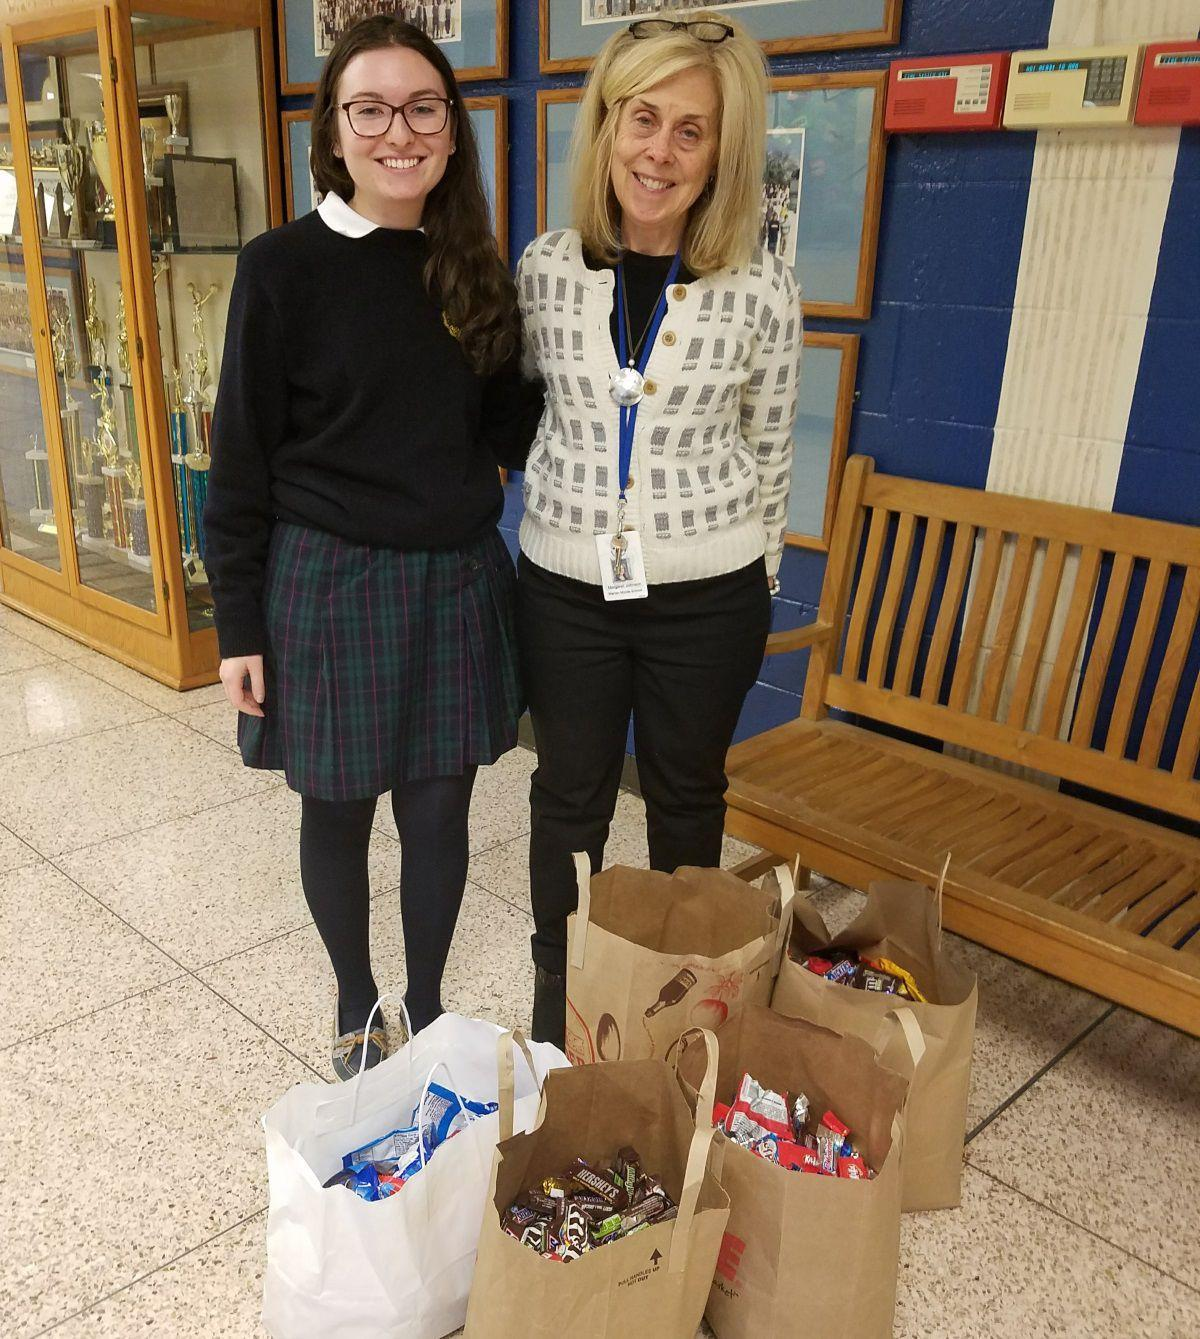 Warren student leads candy drive at Mount Saint Mary